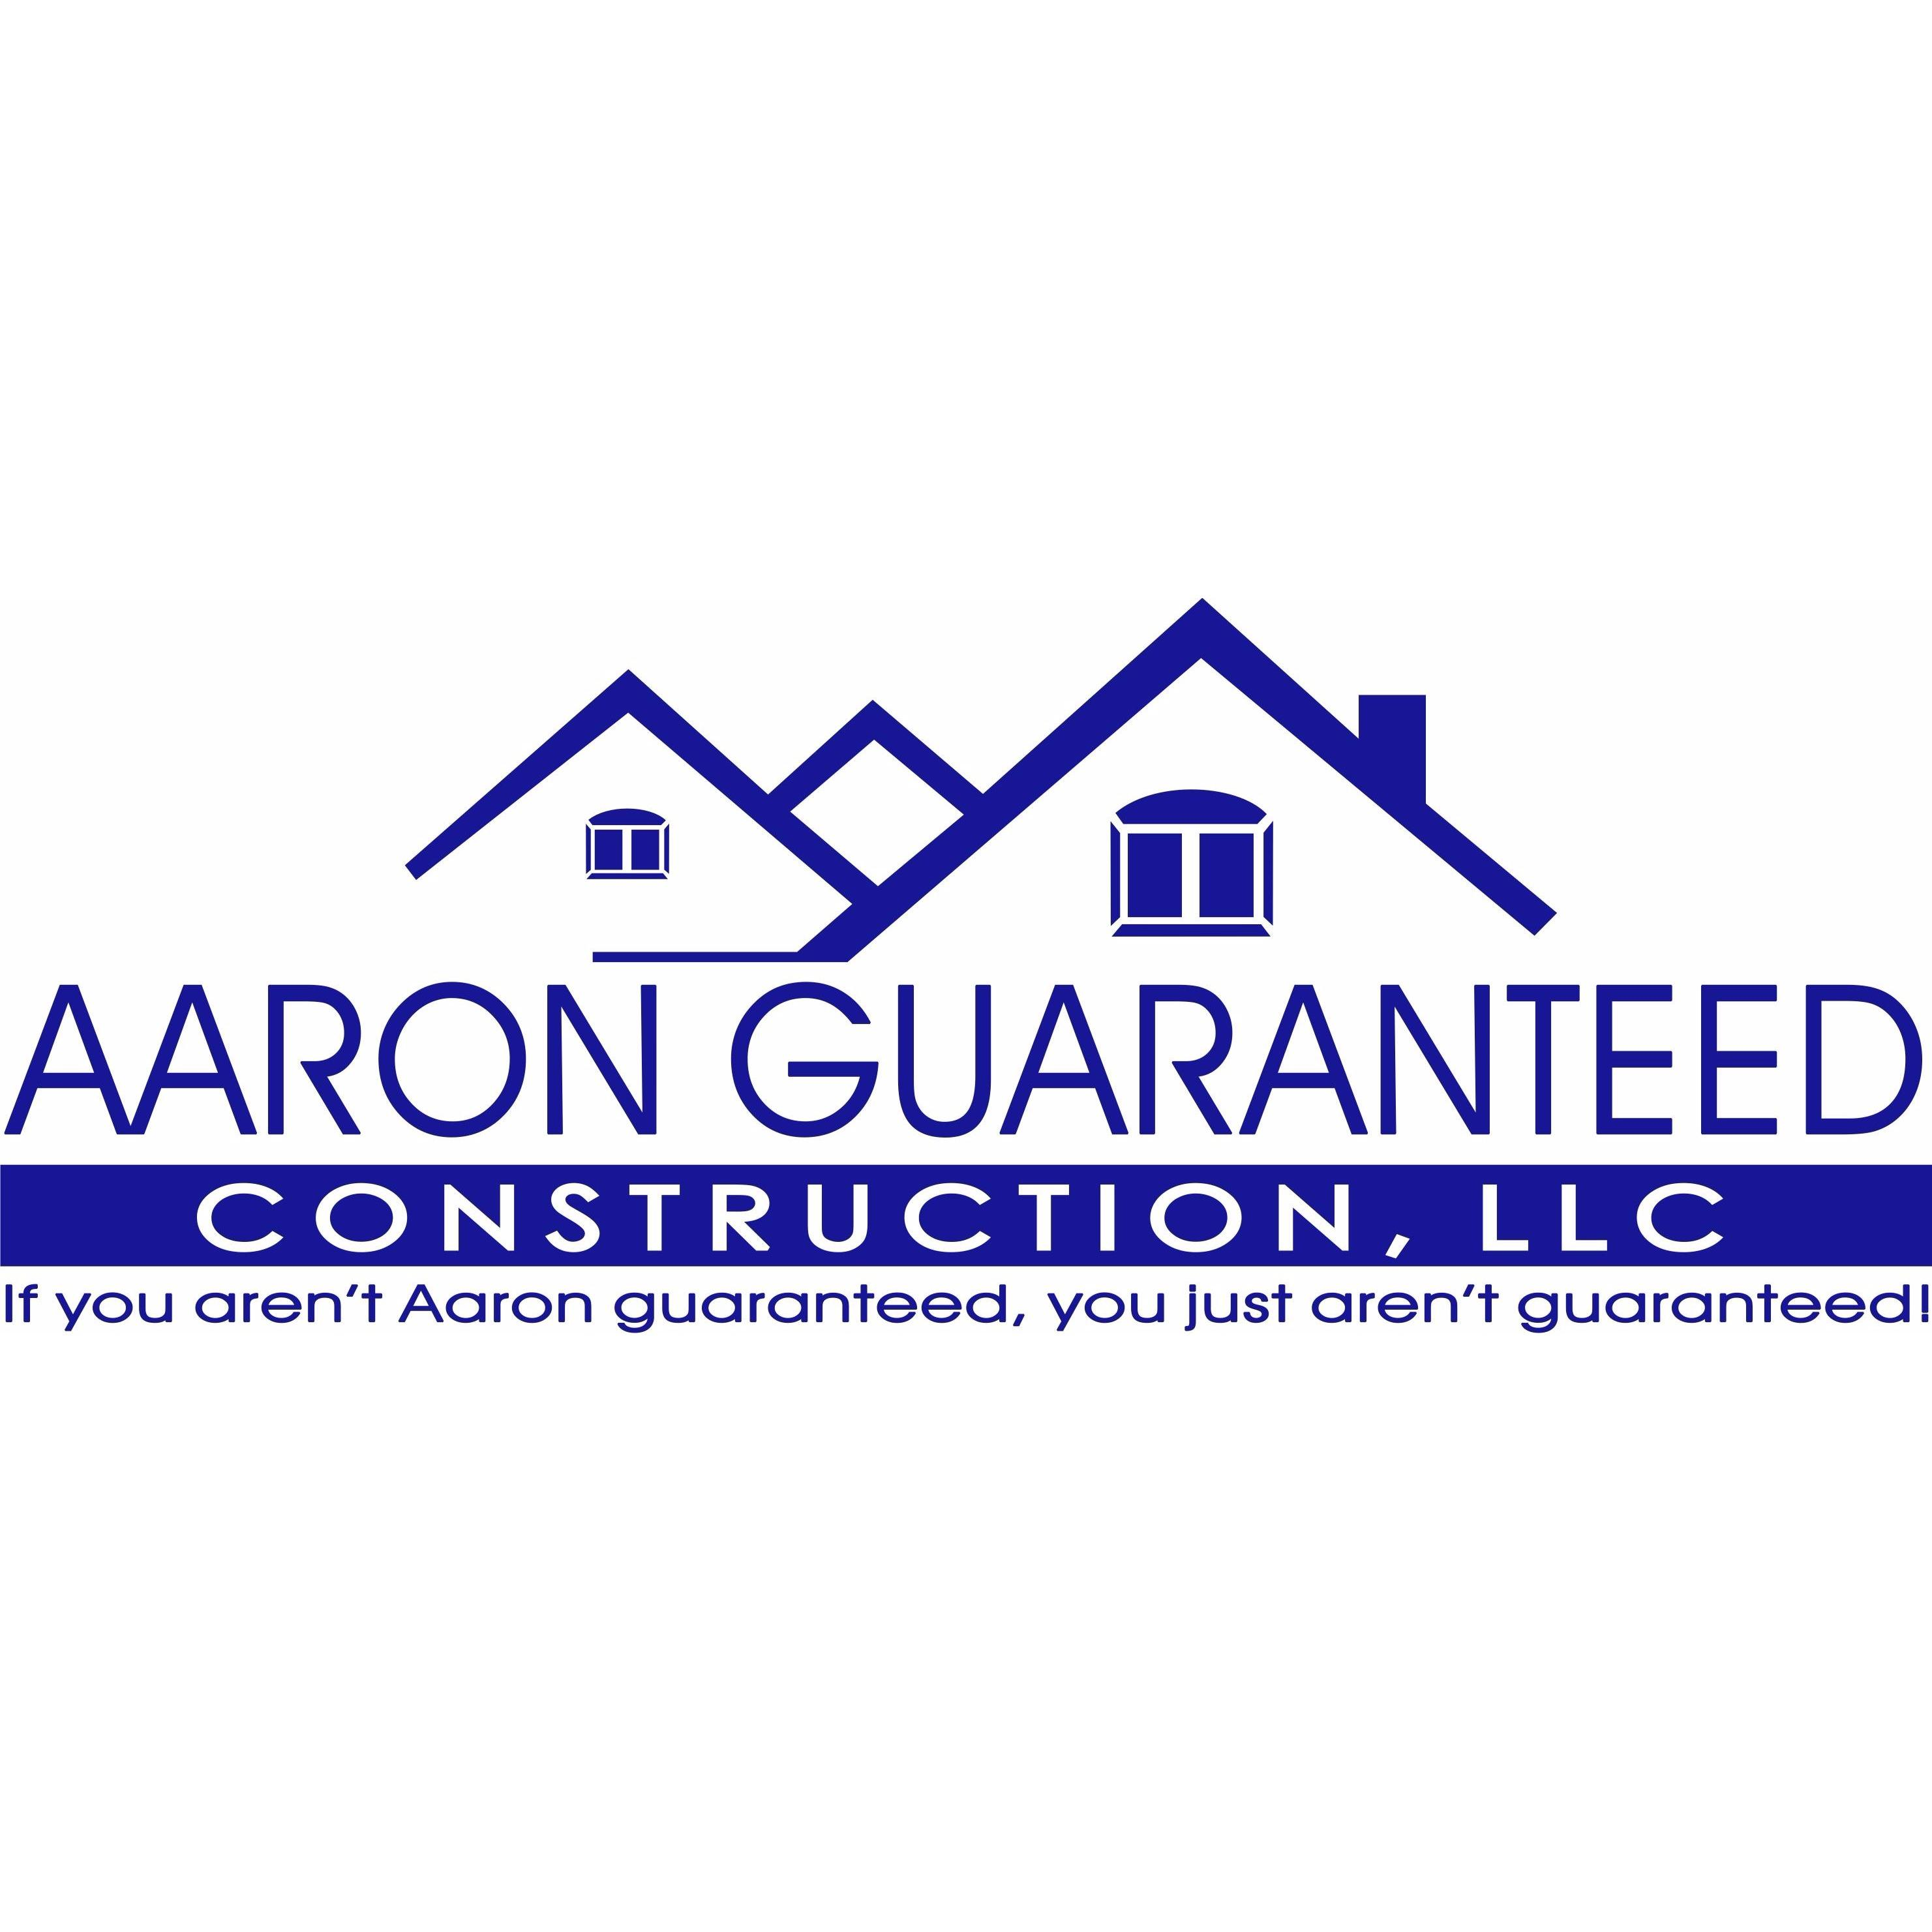 Aaron Guaranteed Construction LLC - West Columbia, SC - Home Centers